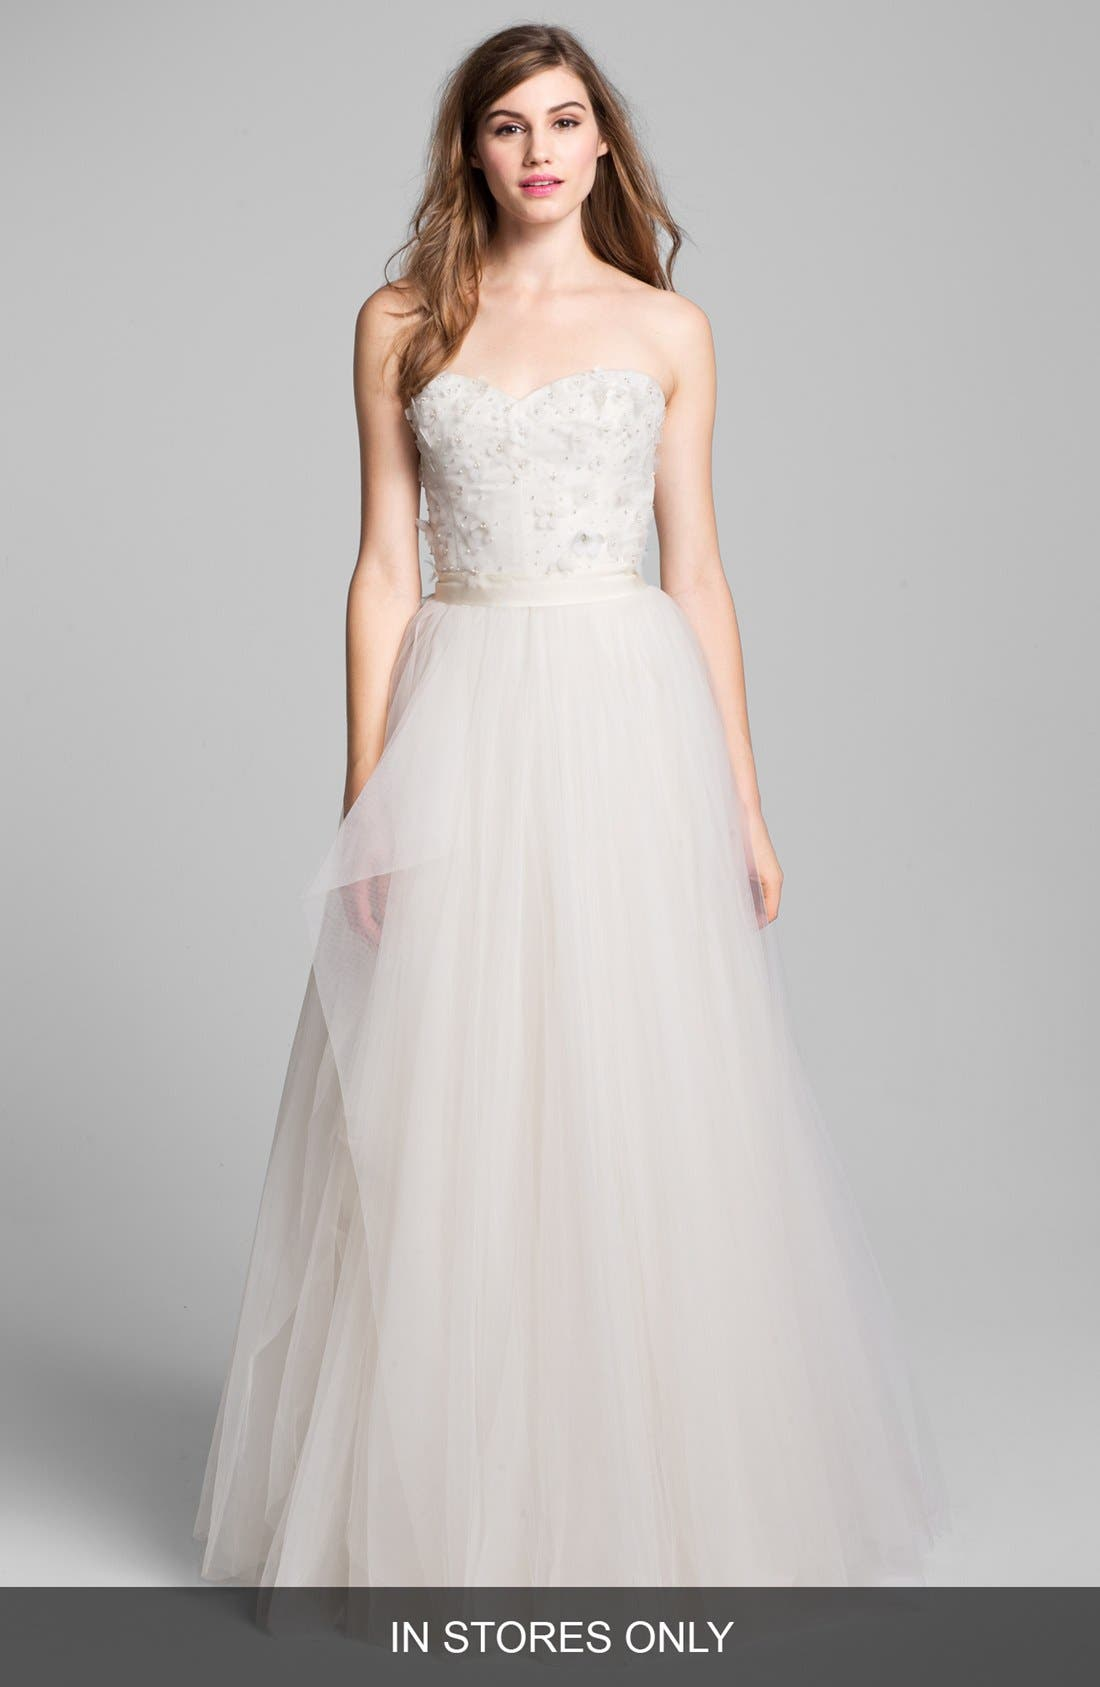 Alternate Image 1 Selected - Roses by Reem Acra 'Coral Bells' Beaded Lace & Tulle Ball Gown (In Stores Only)